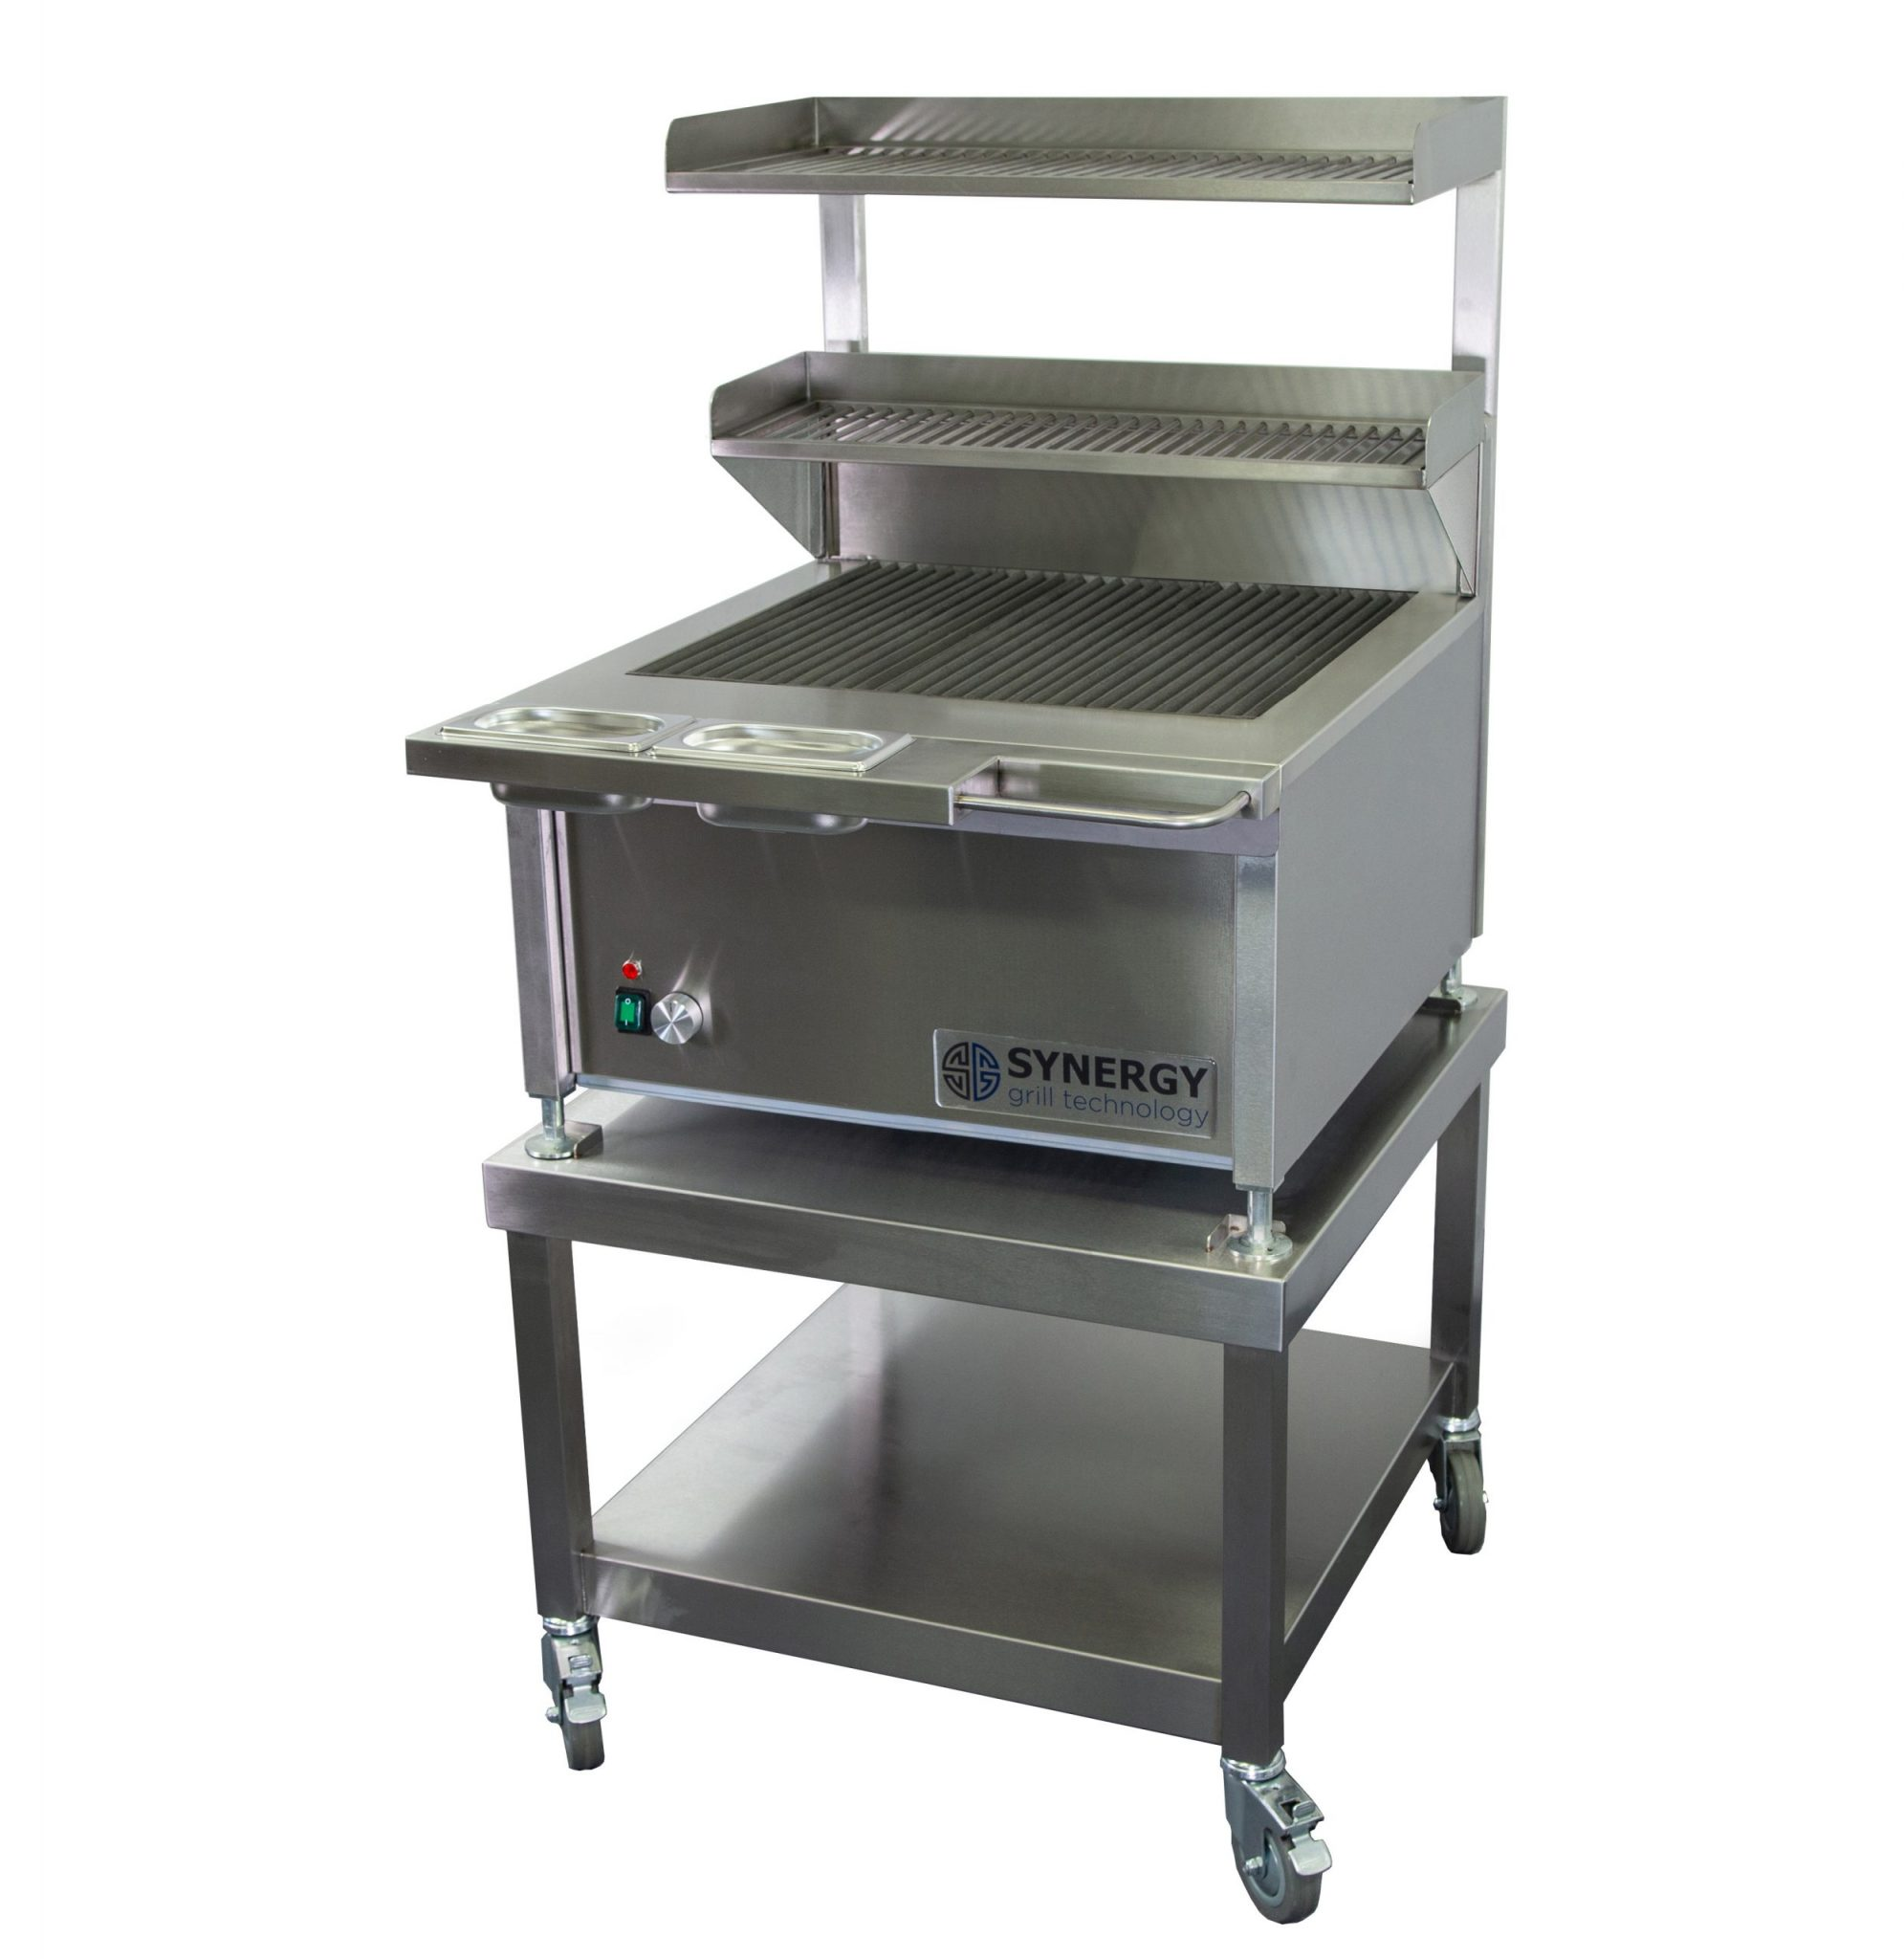 Synergy Grill Trilogy ST630 Silver with Mobile Table